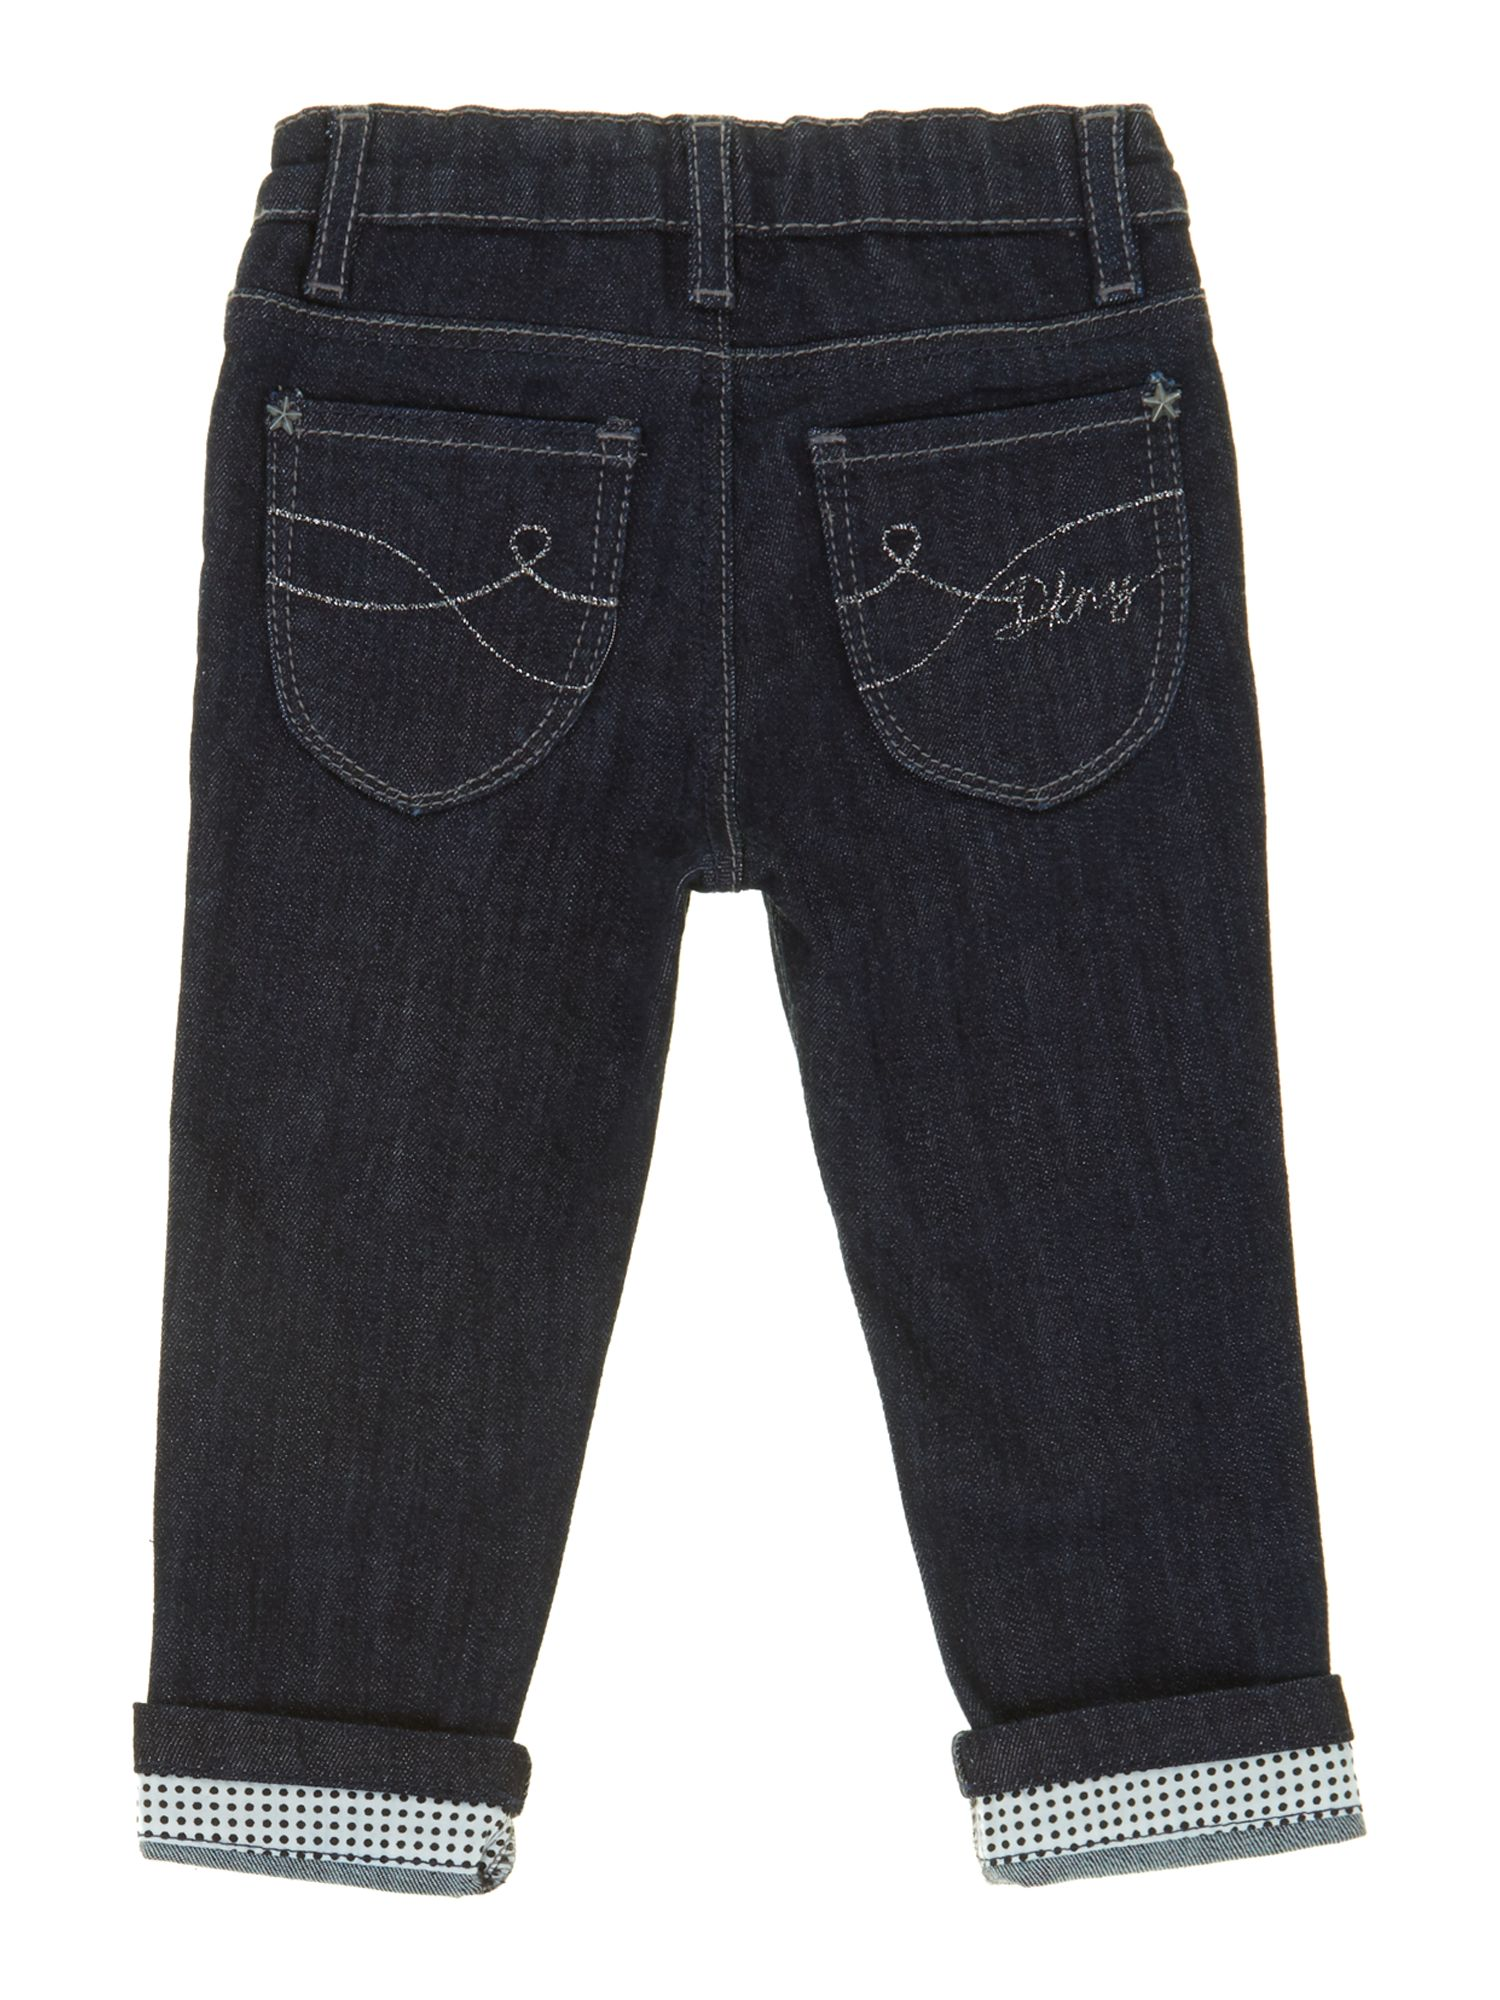 Girls denim jeans